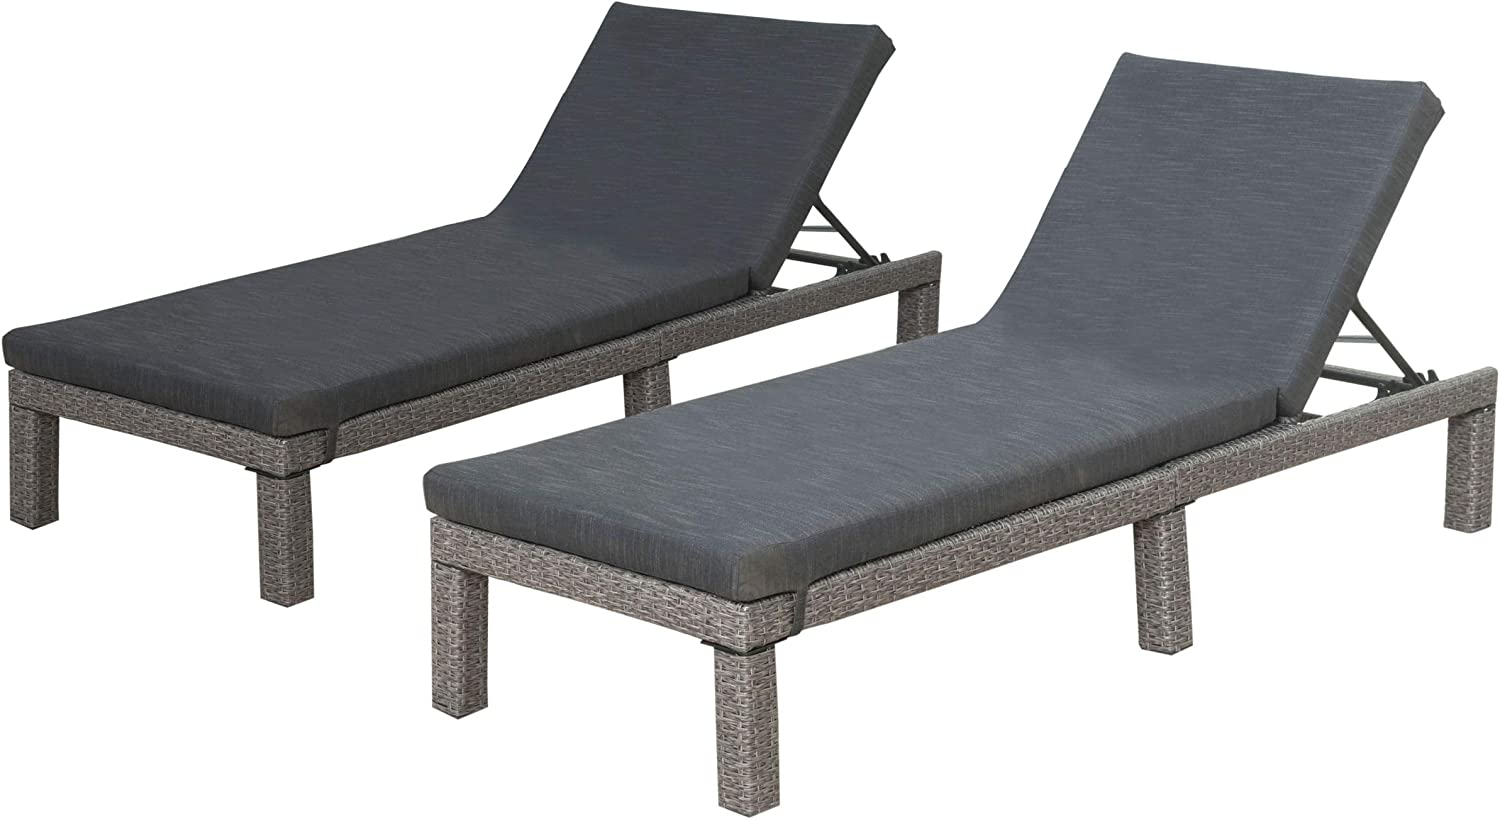 Christopher Knight Home Puerta Outdoor Wicker Chaise Lounges with Water Resistant Cushion, 2-Pcs Set, Mixed Black / Dark Grey